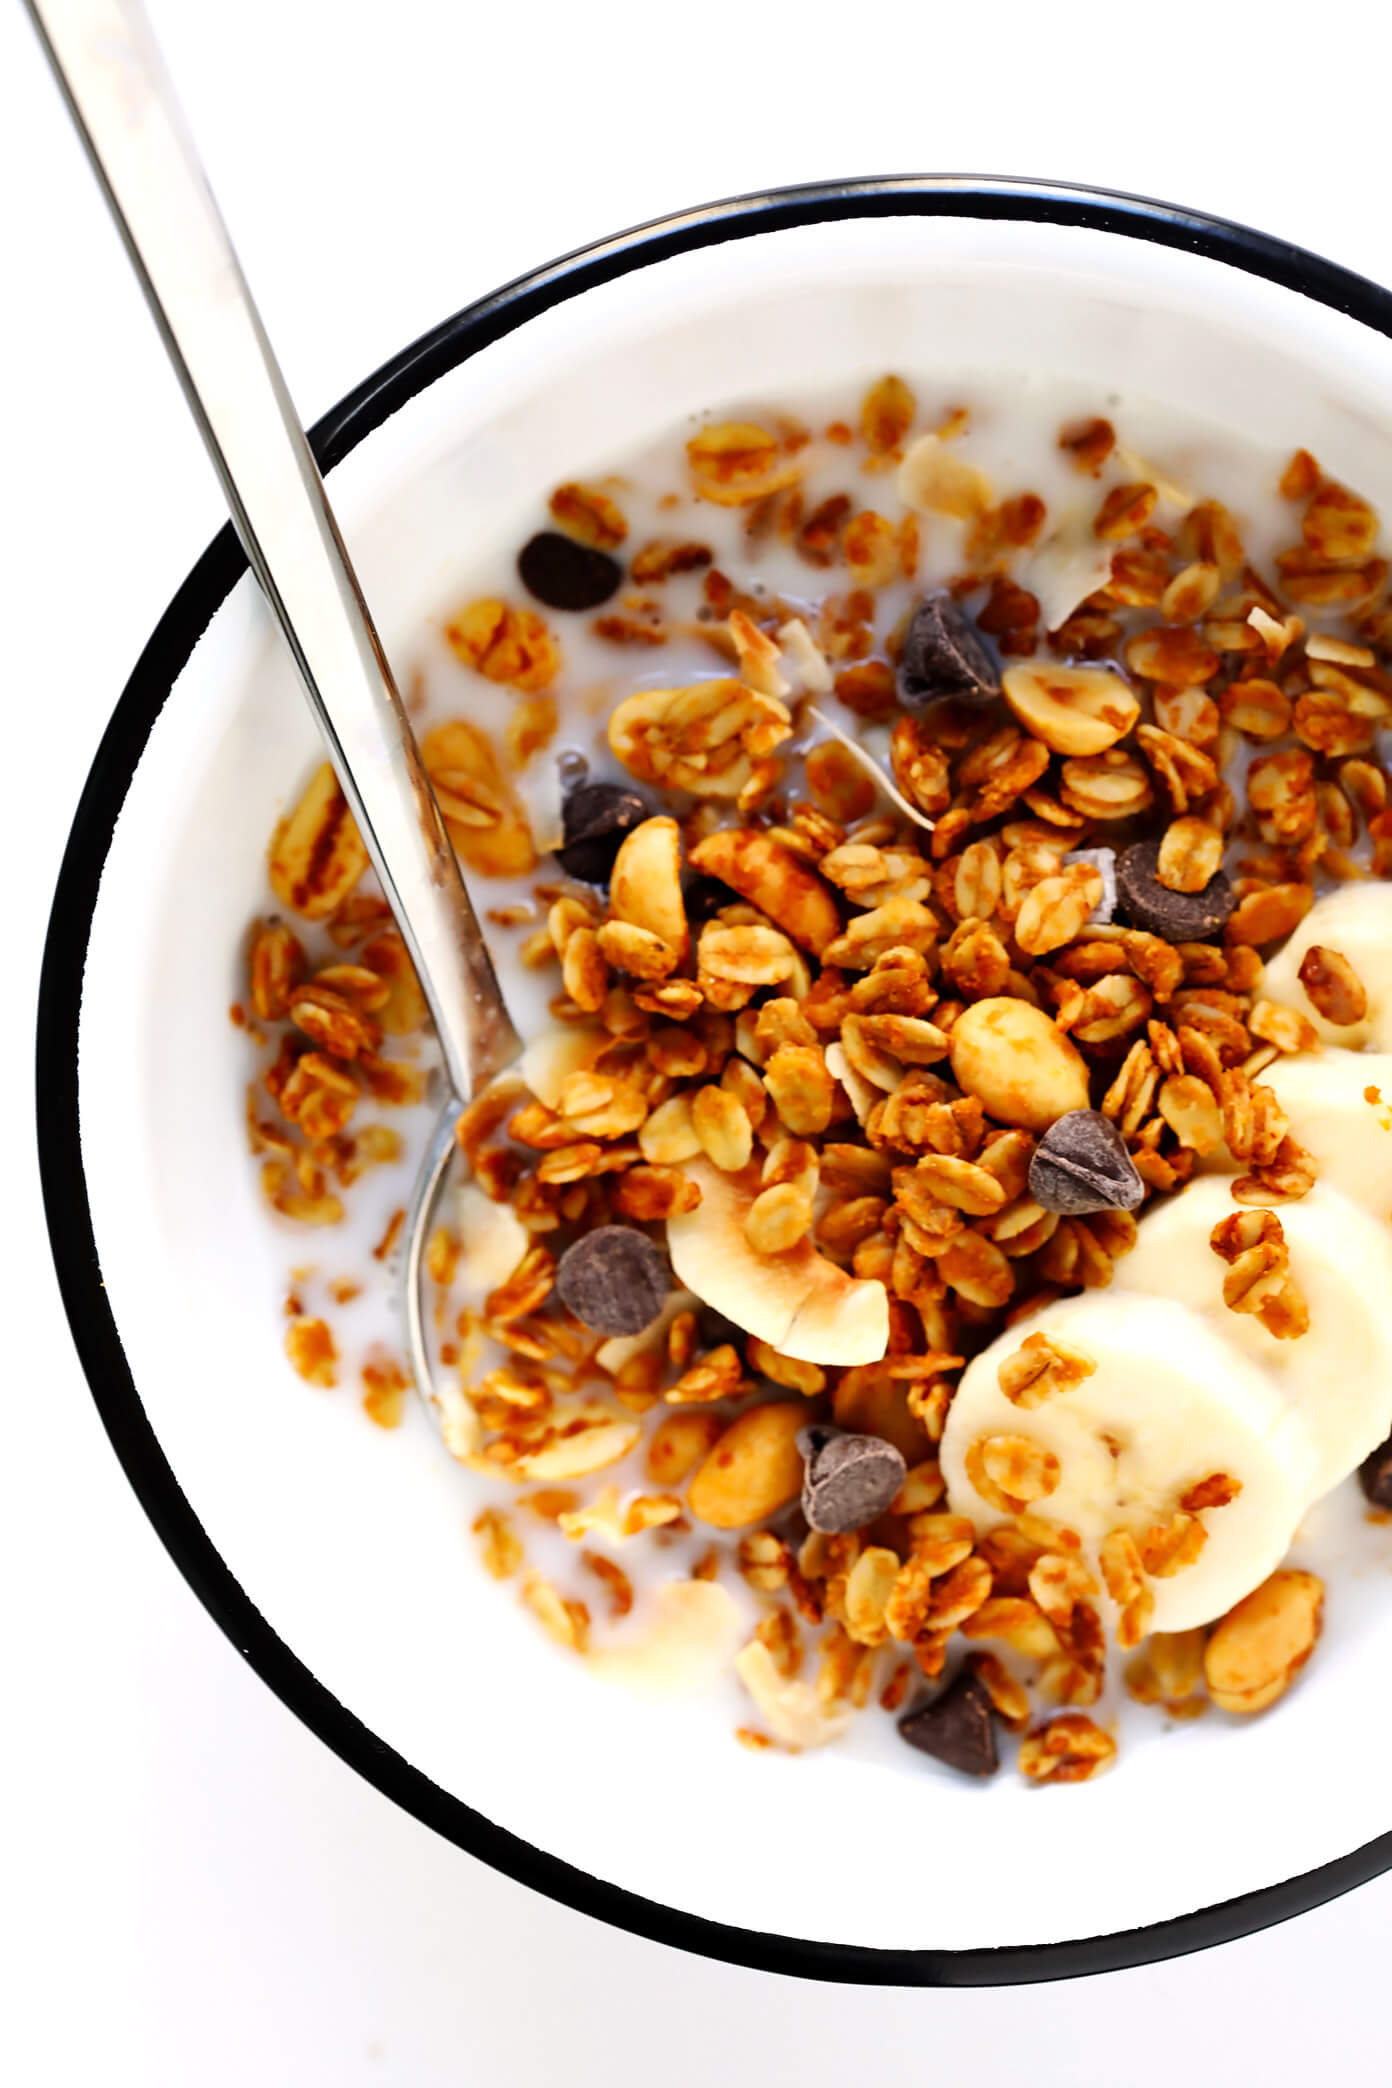 Peanut Butter Granola in Bowl